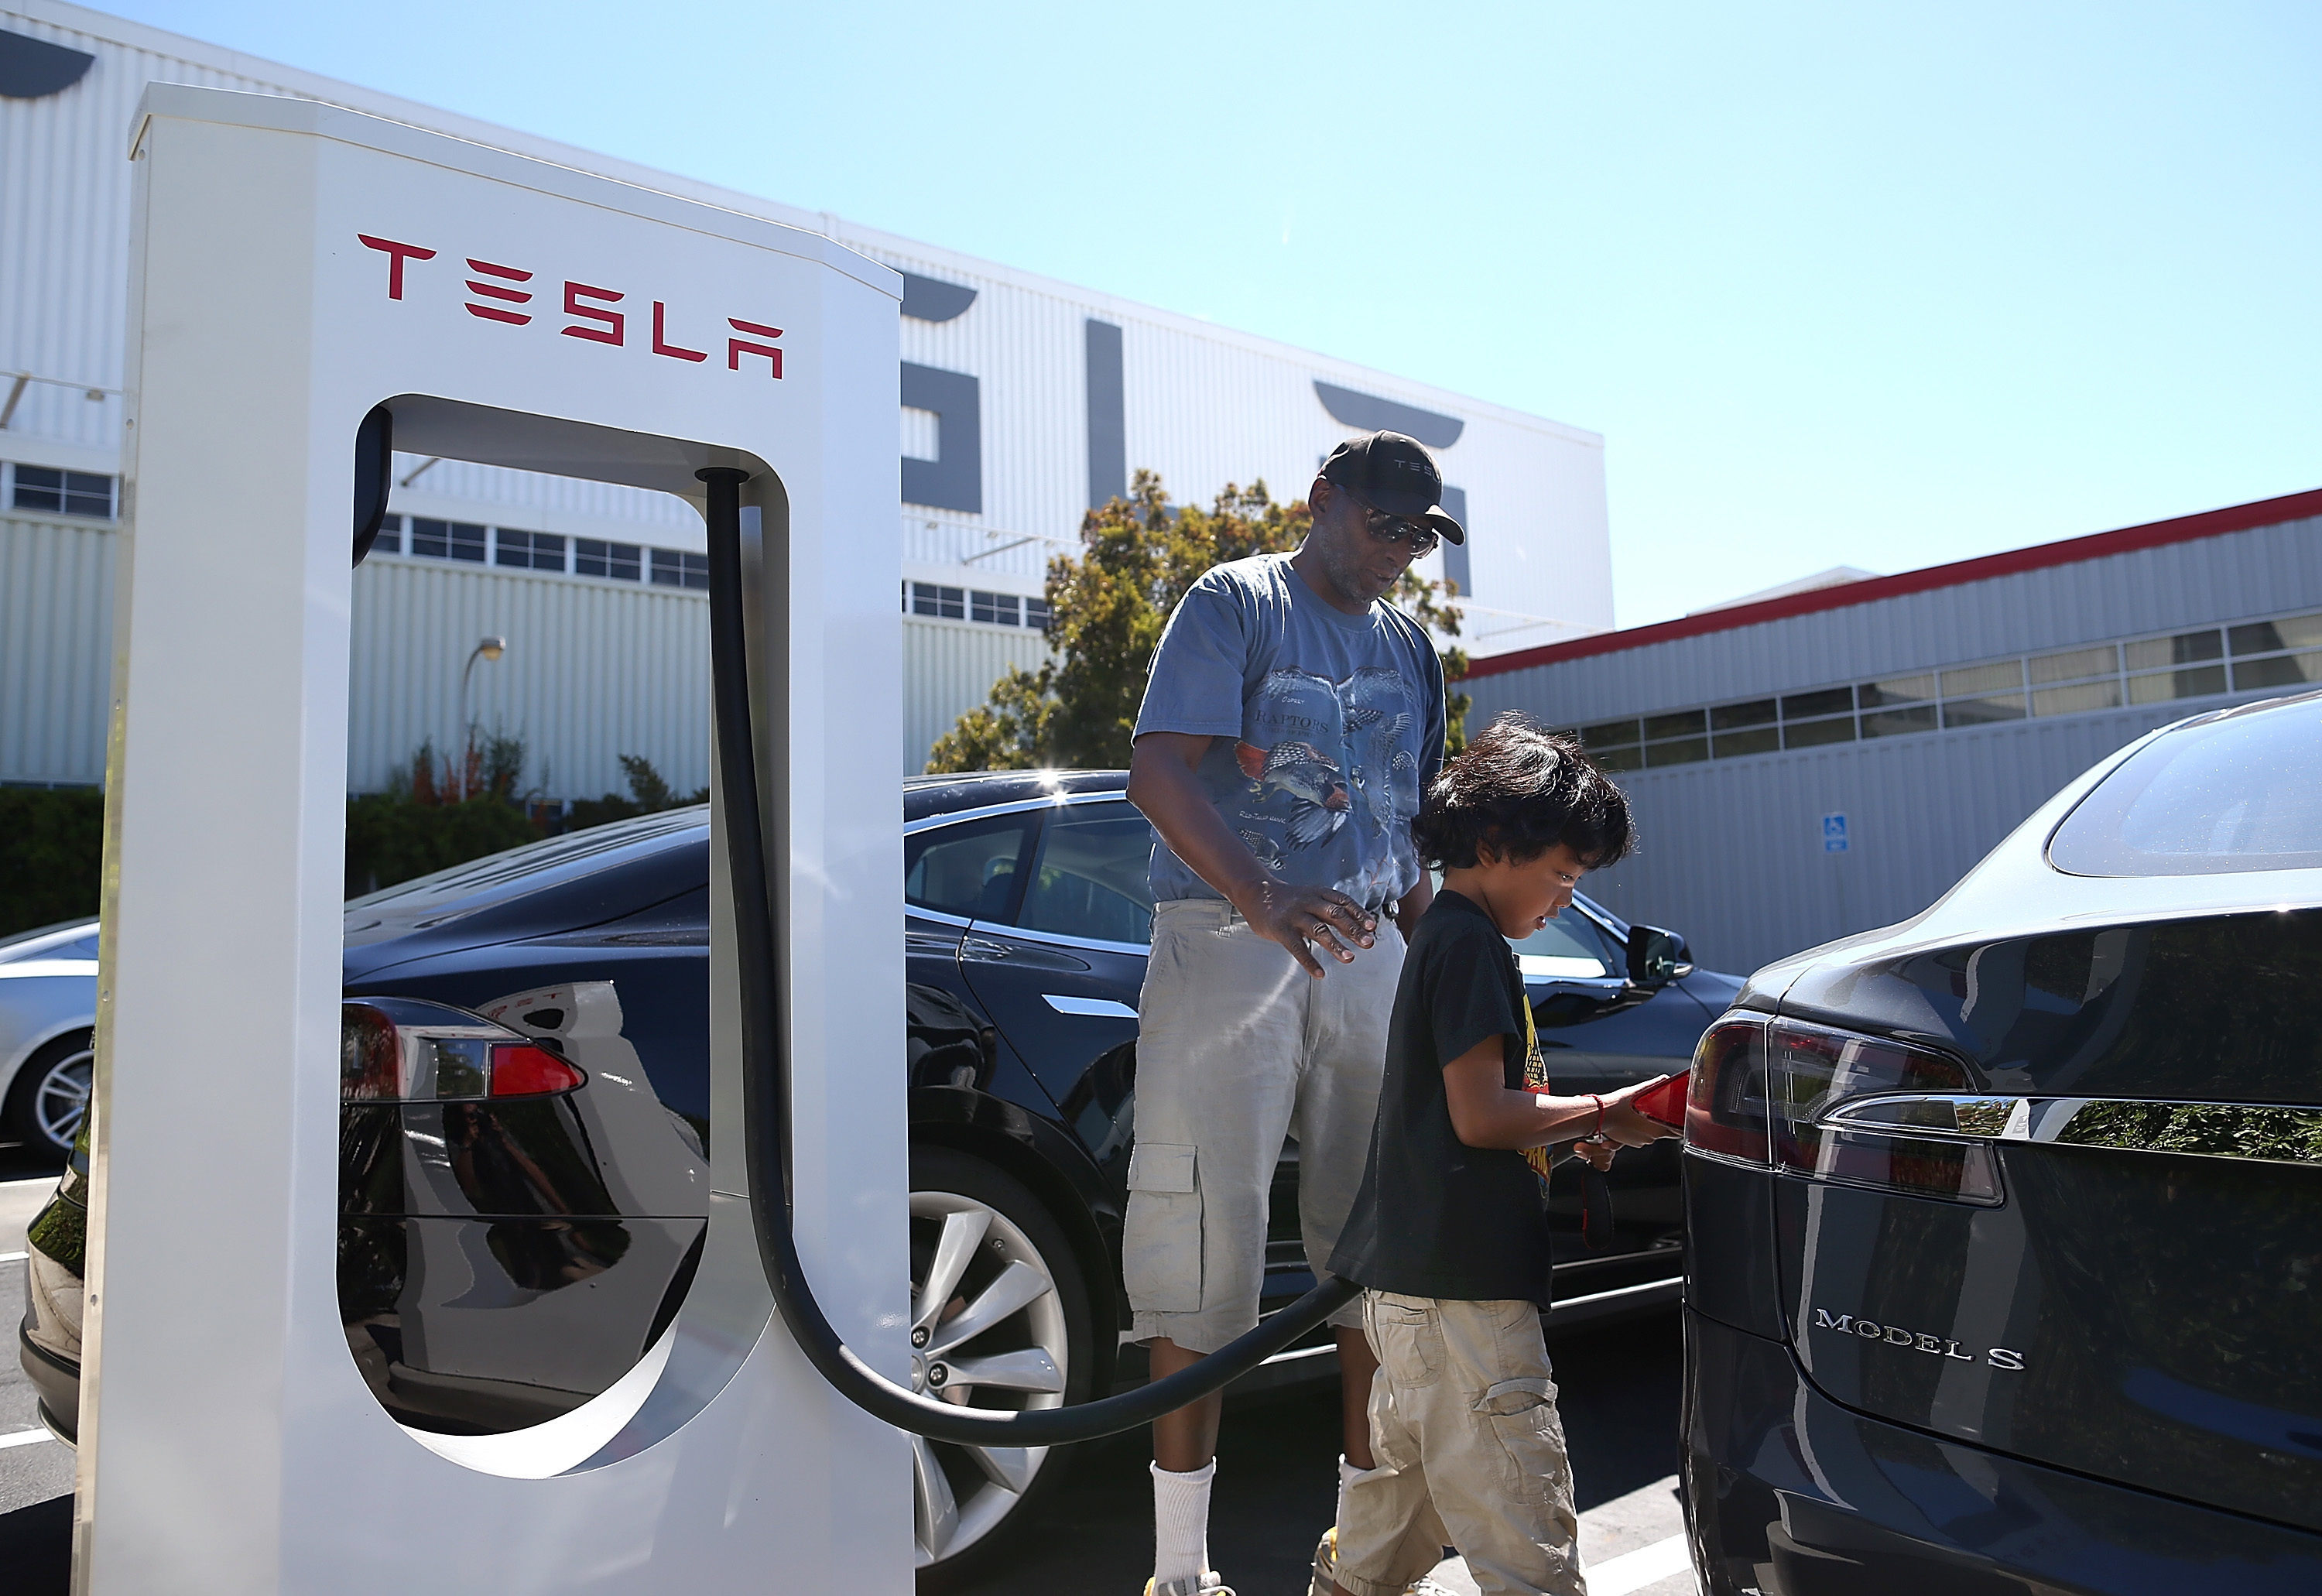 Jinyao Desandies (R) and Dandre Desandies (L) plug the Tesla Supercharger into their Tesla Model S sedan in Fremont, California back in 2013. Then, the supercharger network only had 18 stations nationwide. Now, it has 734.